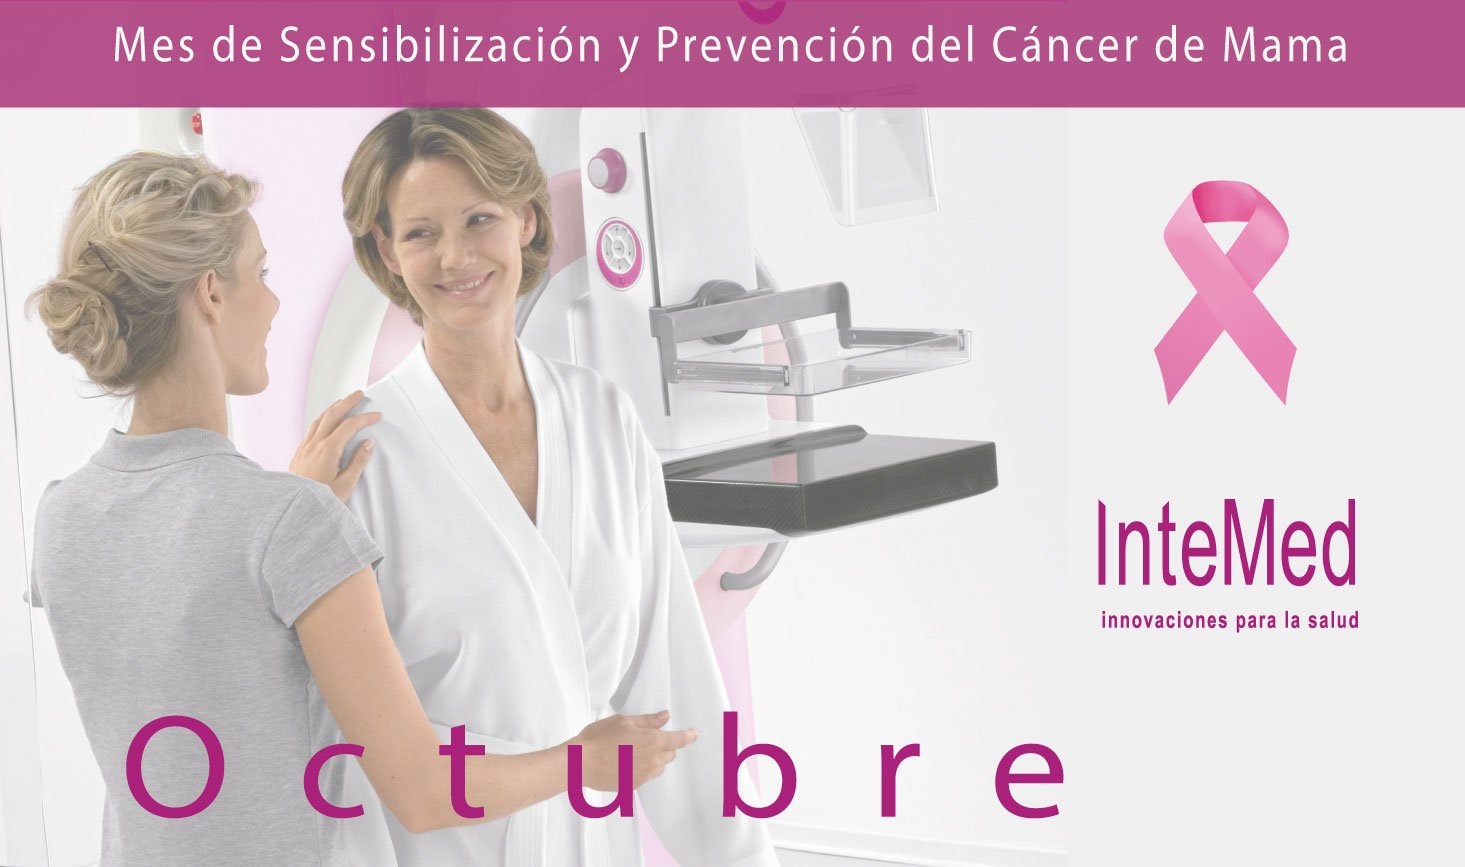 InteMed apoya la concientización del Cáncer de Mama